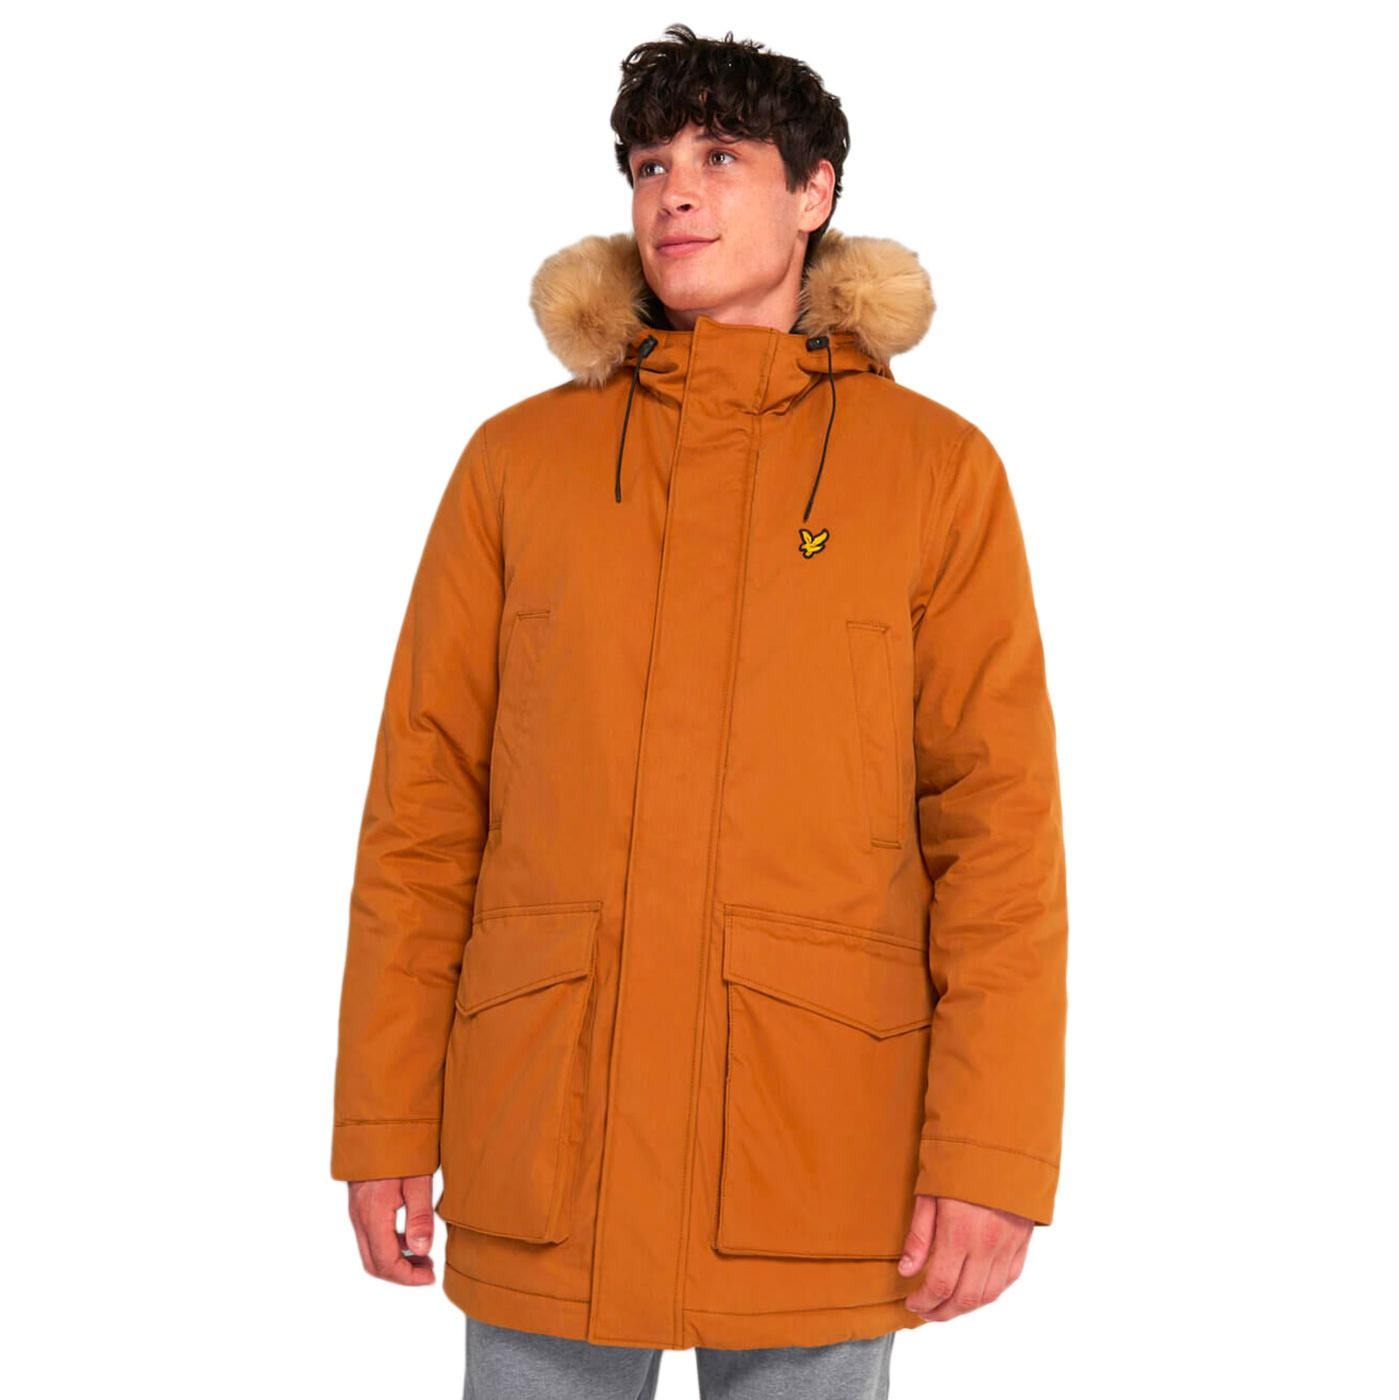 LYLE & SCOTT Mens Retro Mod Winter Parka - Caramel